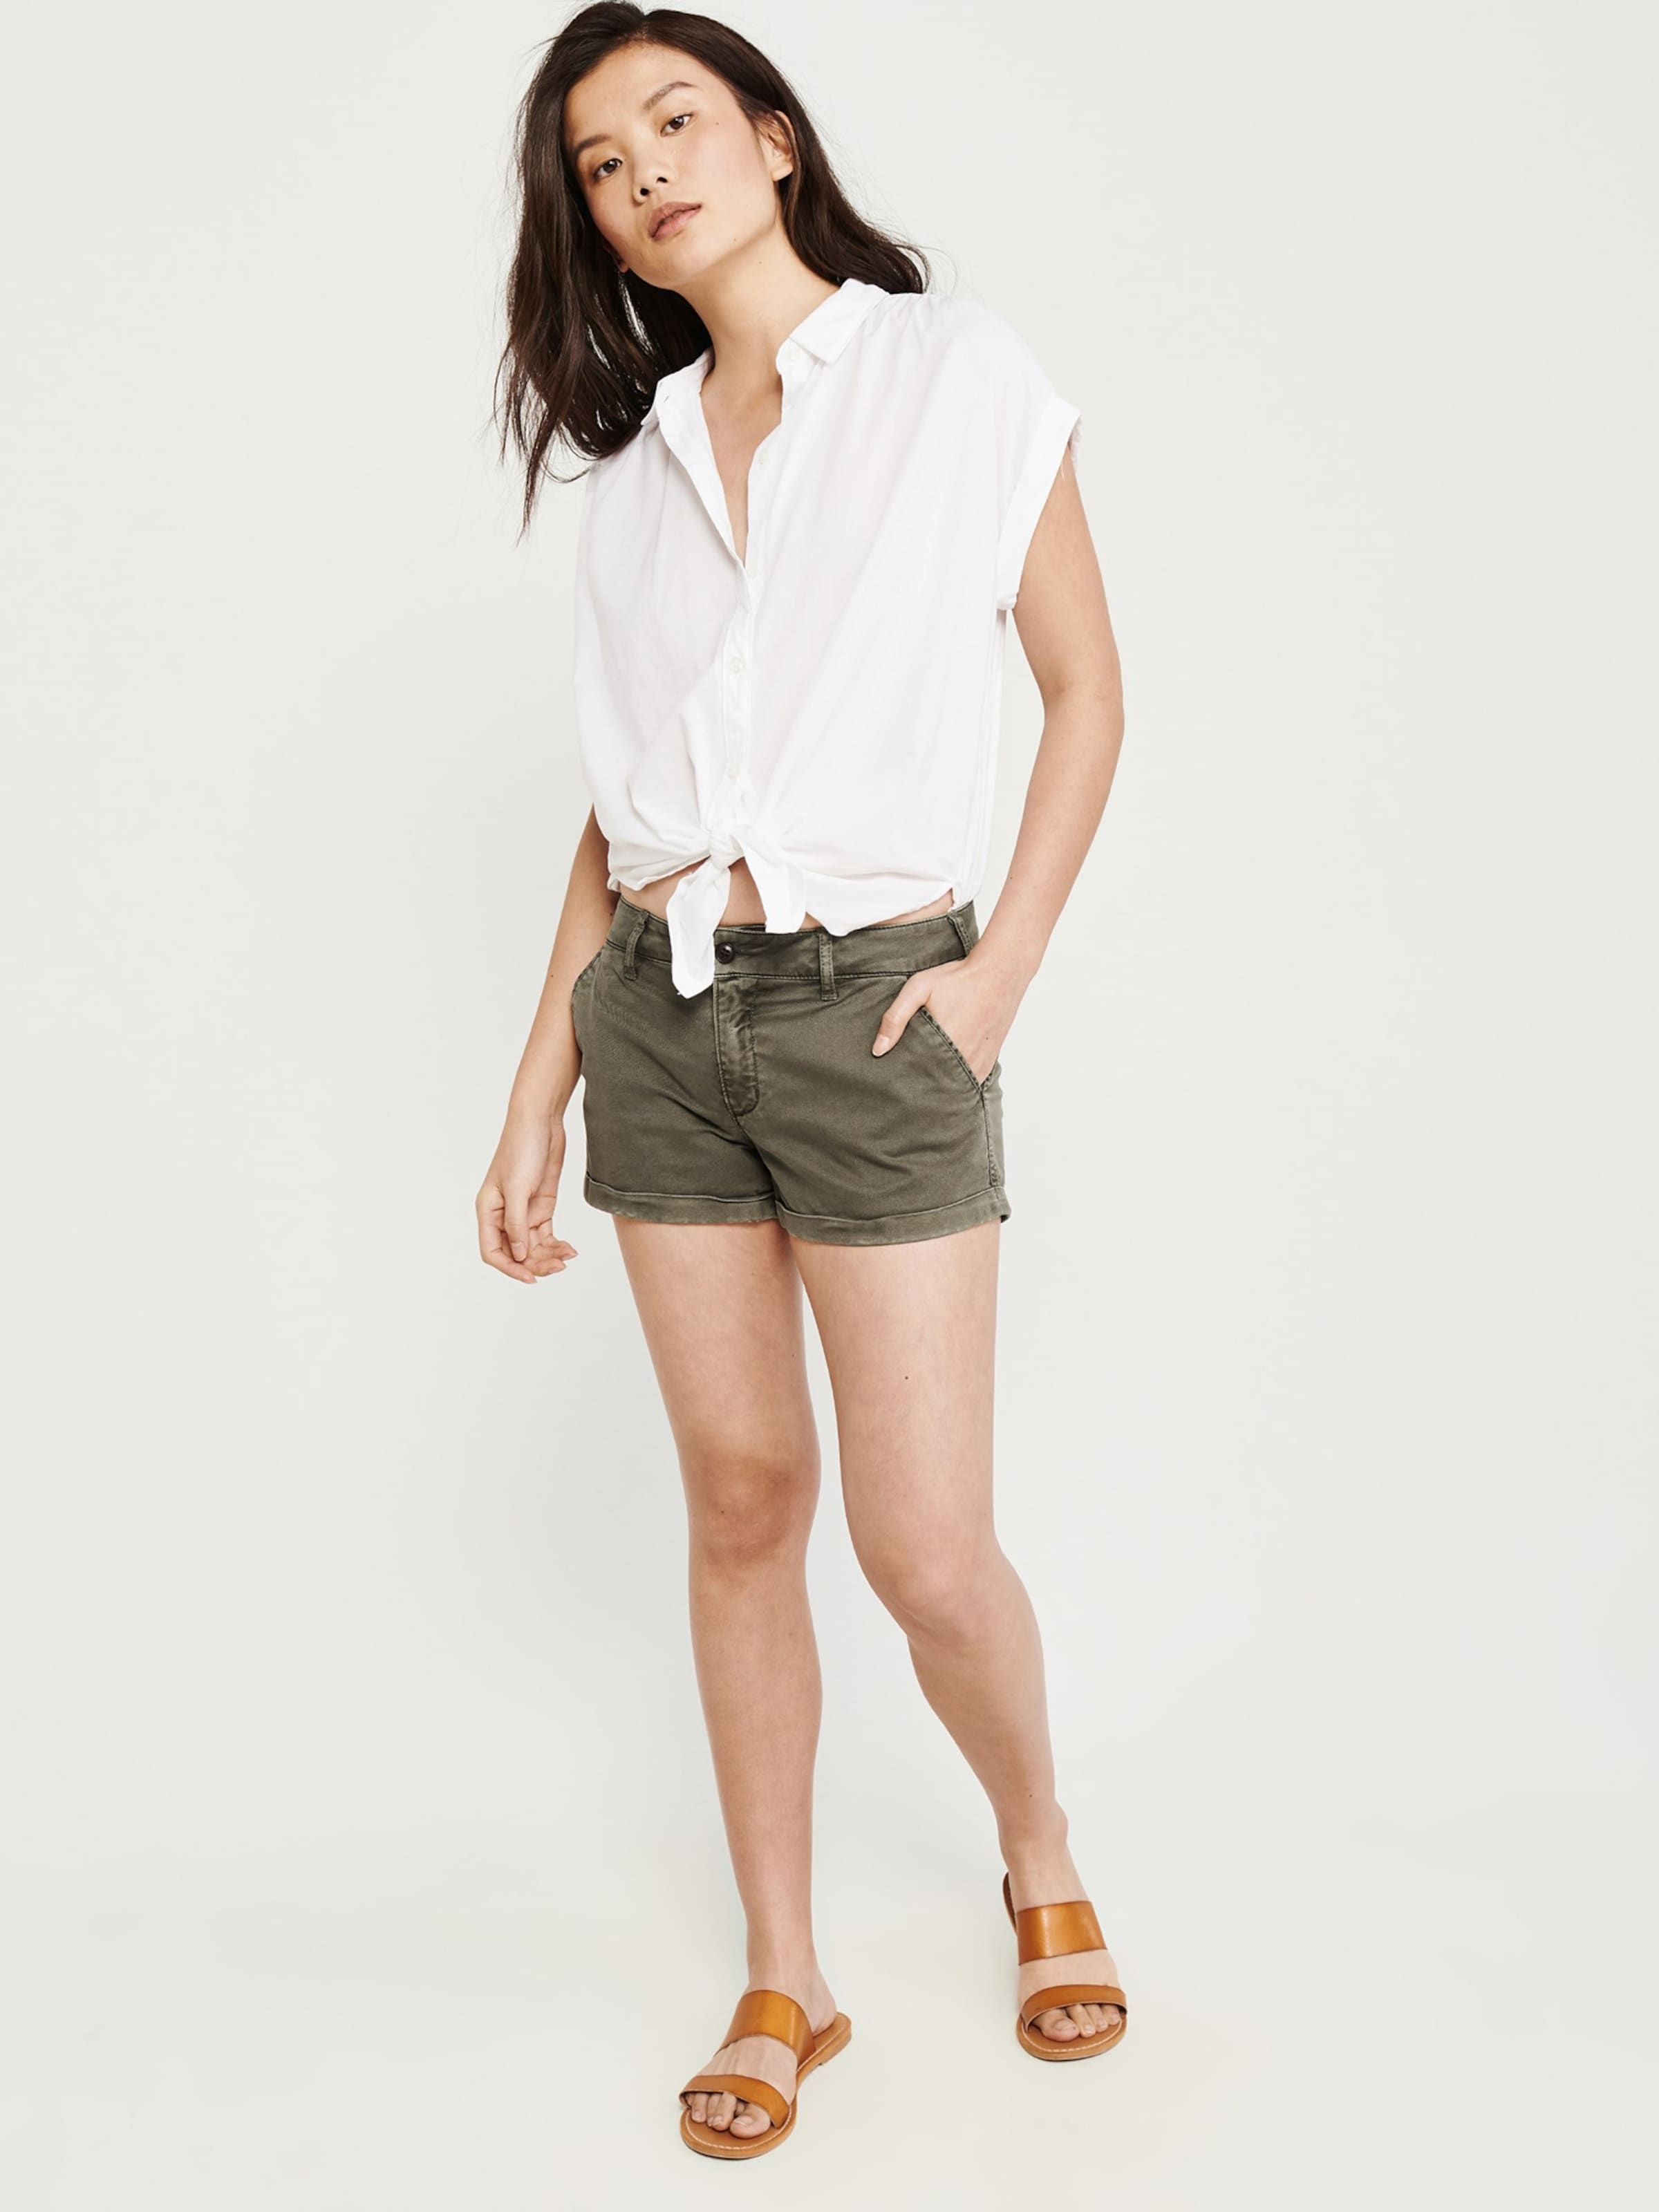 Abercrombieamp; Oliv Fitch Shorts Shorts Abercrombieamp; Fitch In UzLqSVGjMp